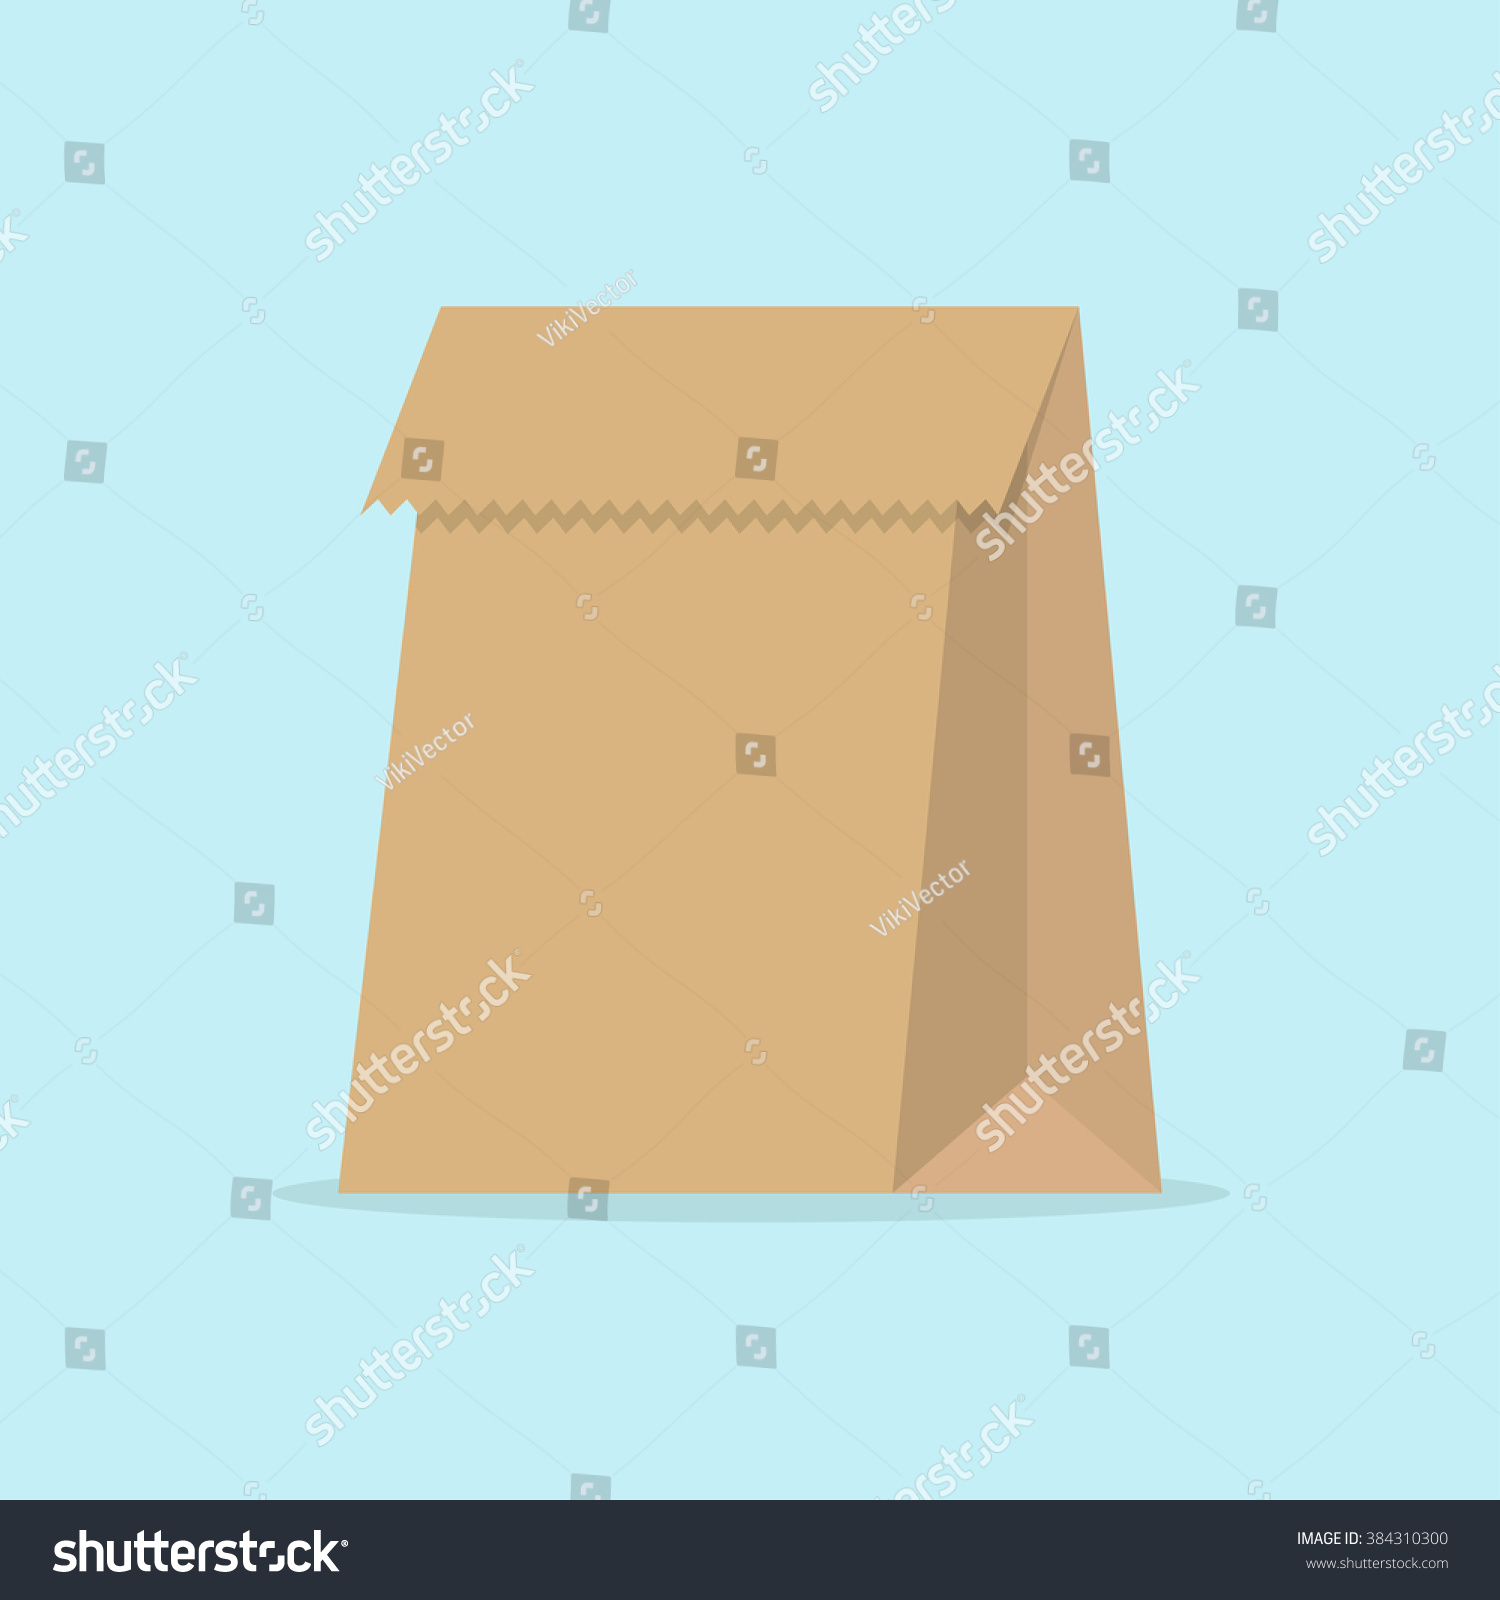 Paper bag vector - Grocery Paper Bag Vector Illustration Isolated On Background Brown Paper Bag For Products Or Food